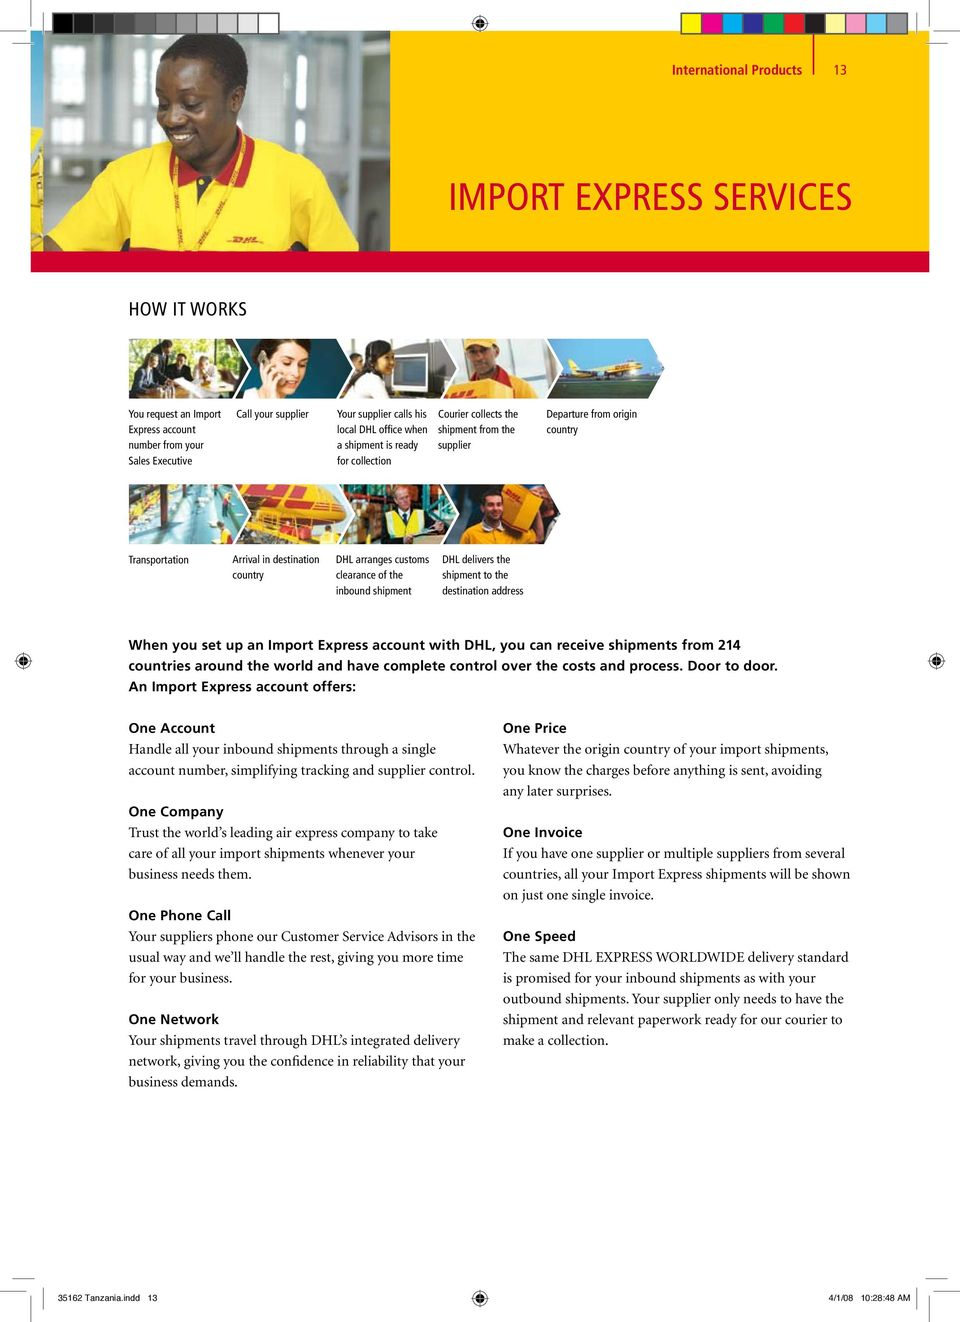 inbound shipment DHL delivers the shipment to the destination address When you set up an Import Express account with DHL, you can receive shipments from countries around the world and have complete